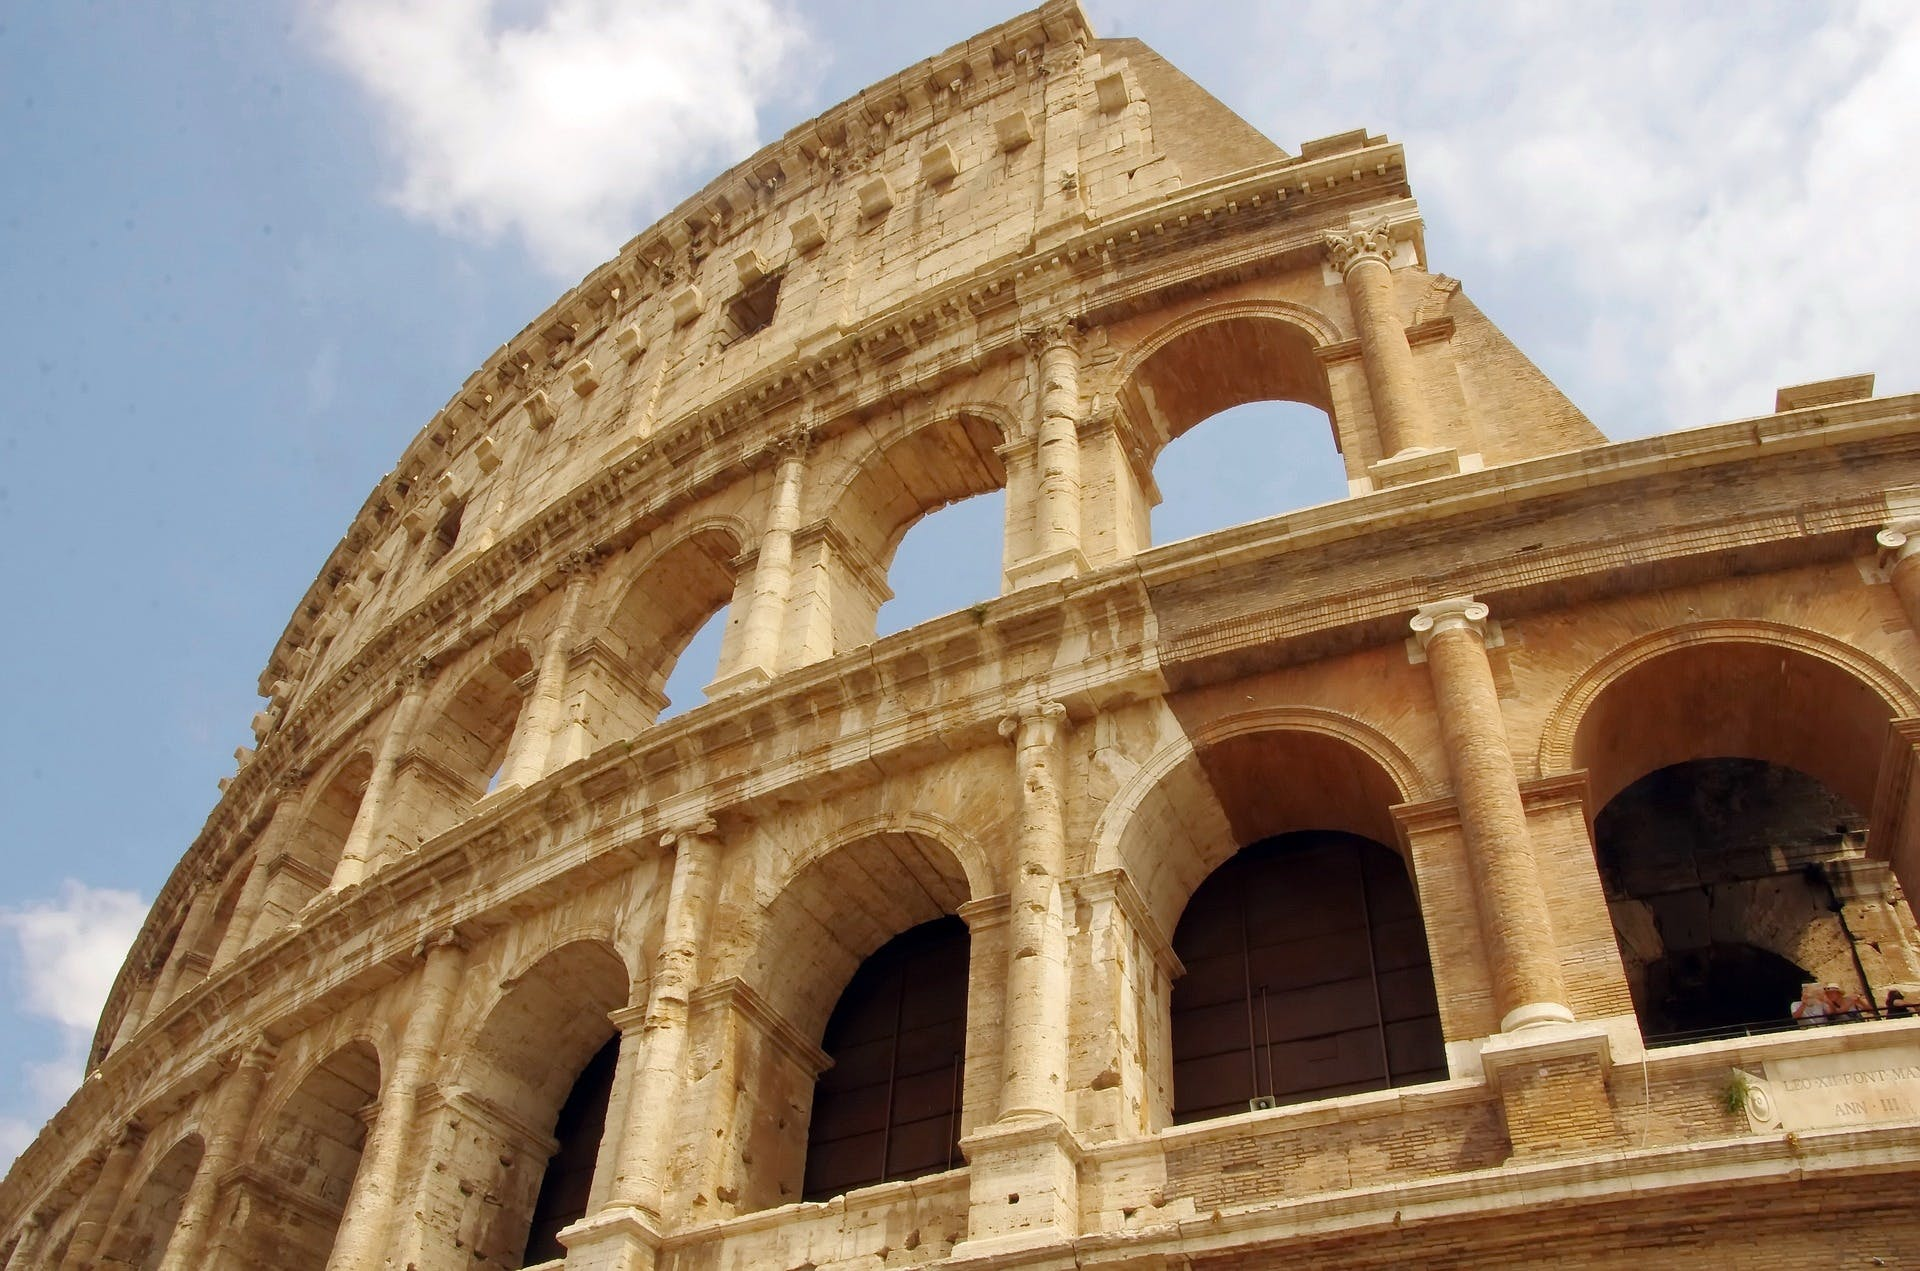 Colosseum, Roman Forum and Palatine Hill entrance ticket with audio guide